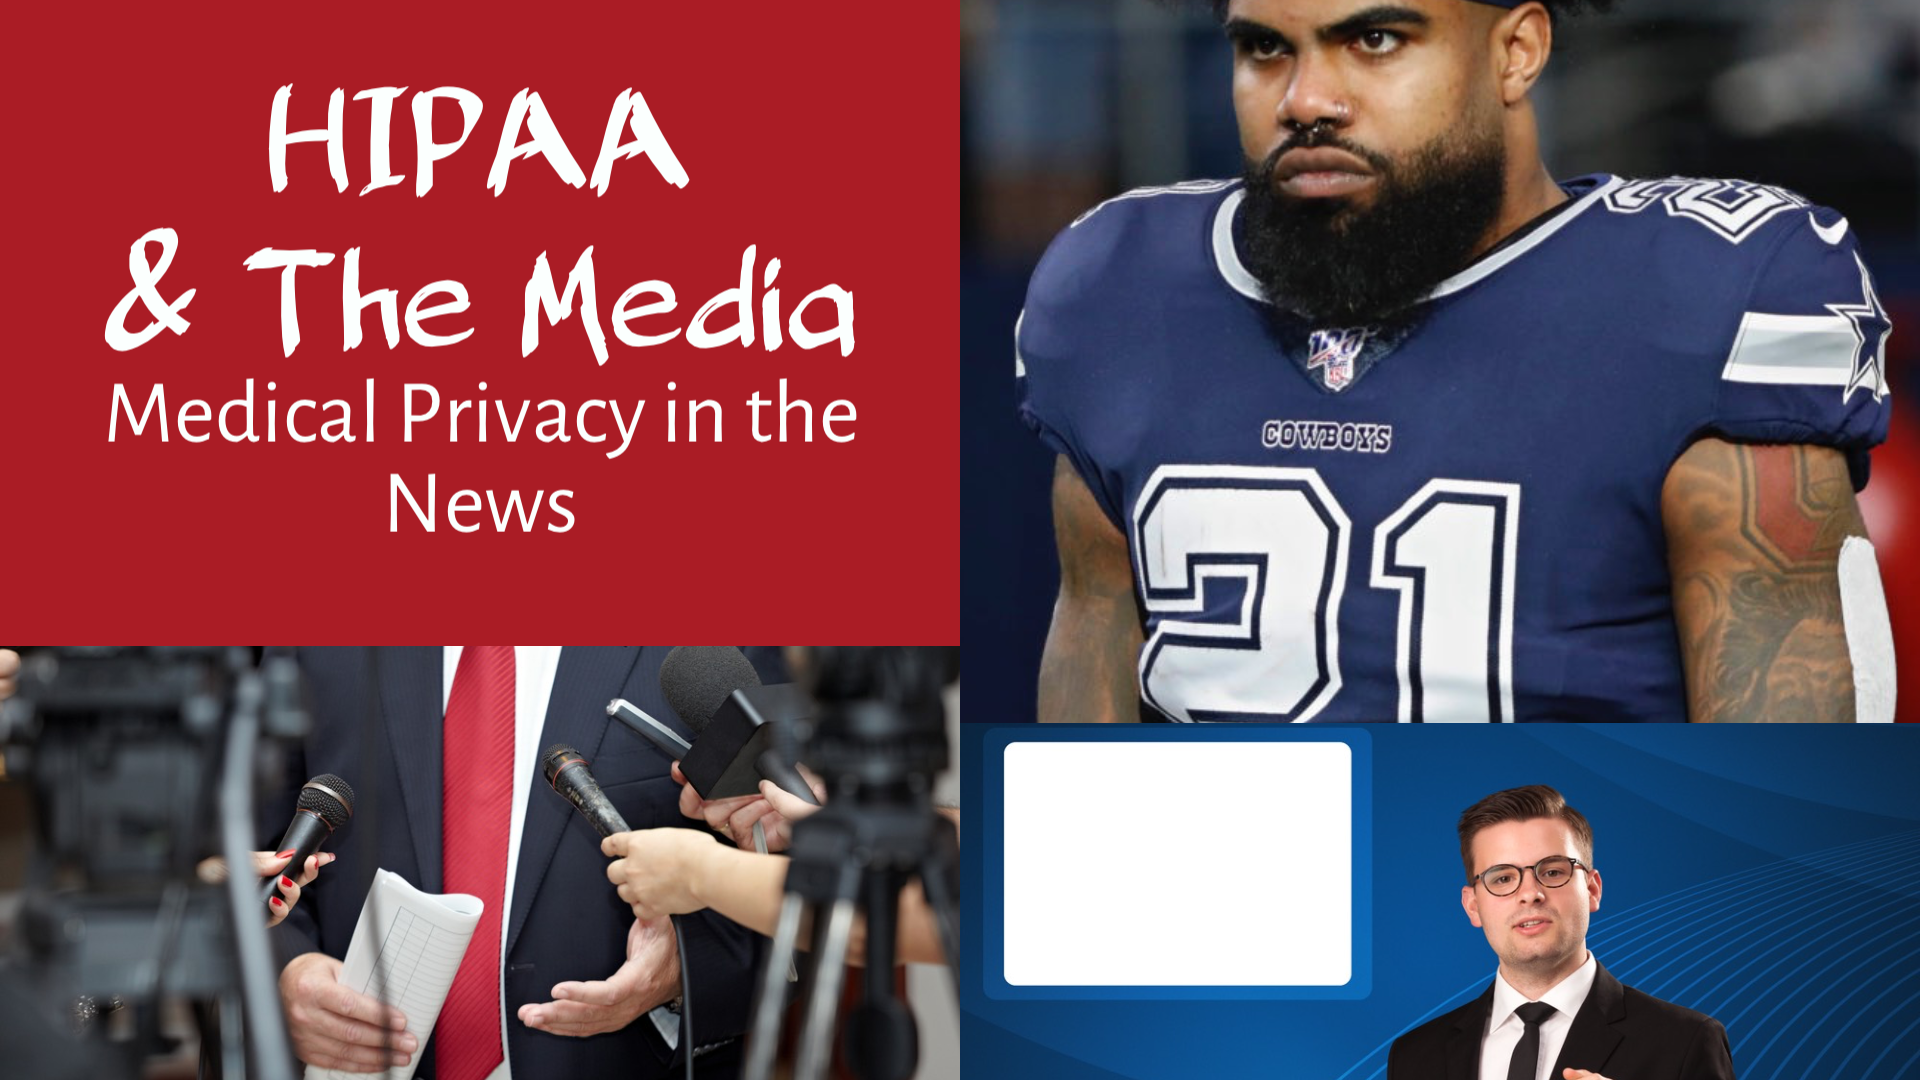 Ezekiel Elliott COVID-Test Disclosure Highlights Health Care Provider & Plan HIPAA & Other Privacy Risks From Medical Testing & Other Medical